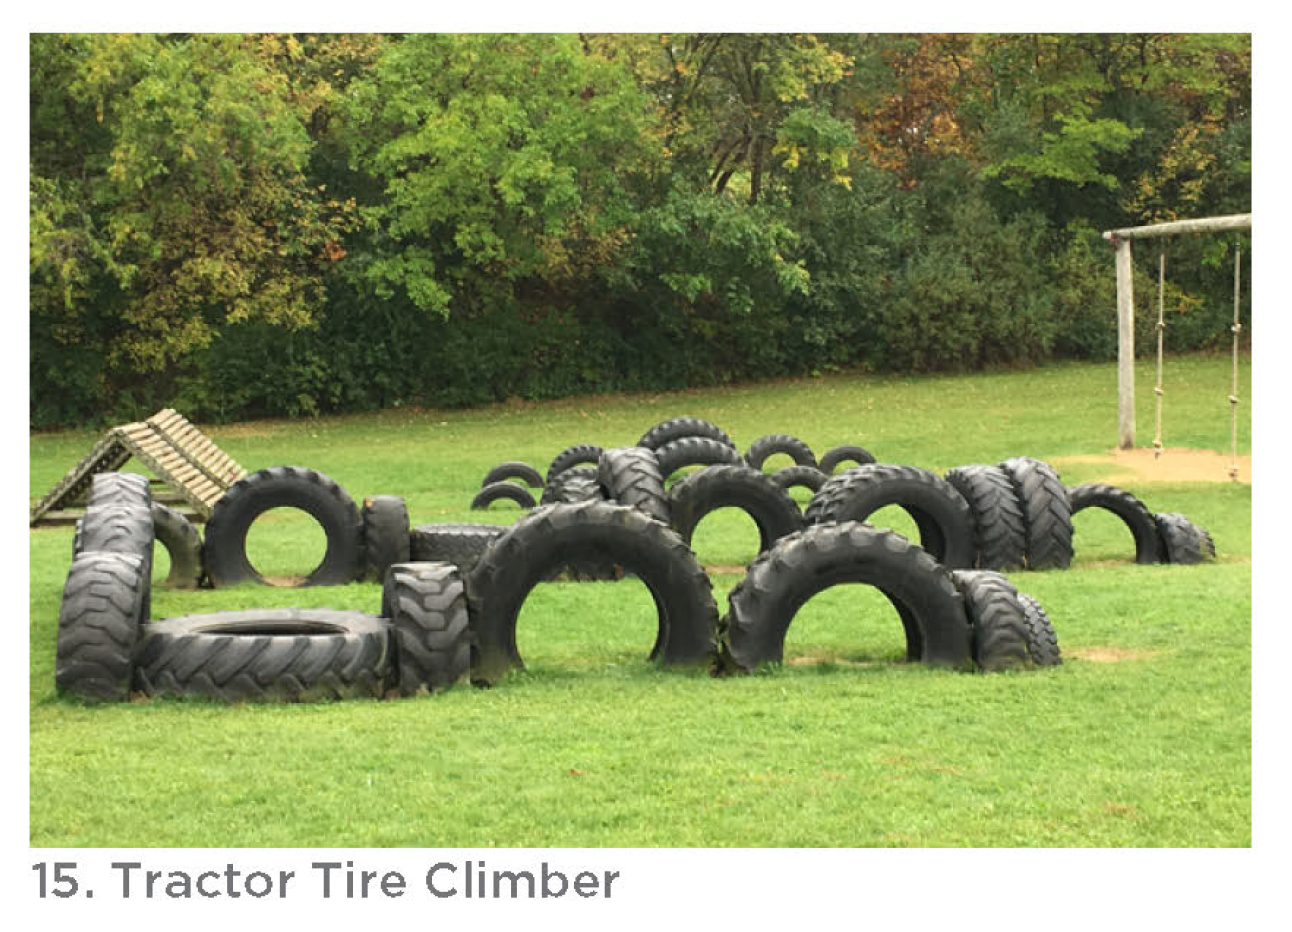 Photo of the tractor tire climber.